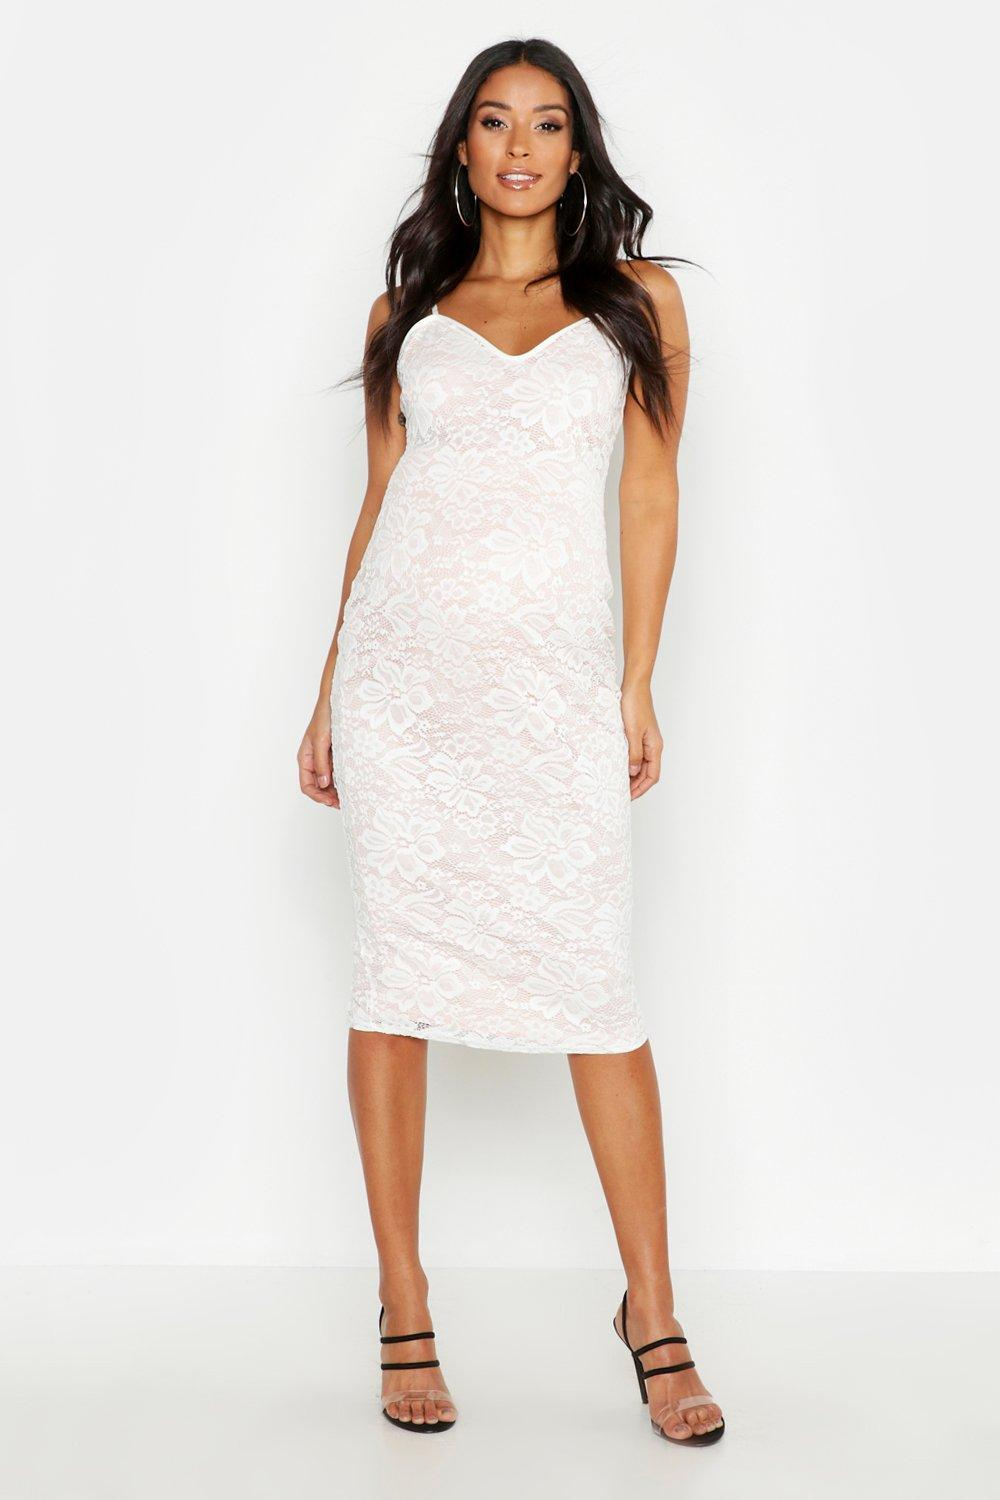 660dd8d5d7fc Boohoo Maternity Lace Midi Dress in White - Lyst